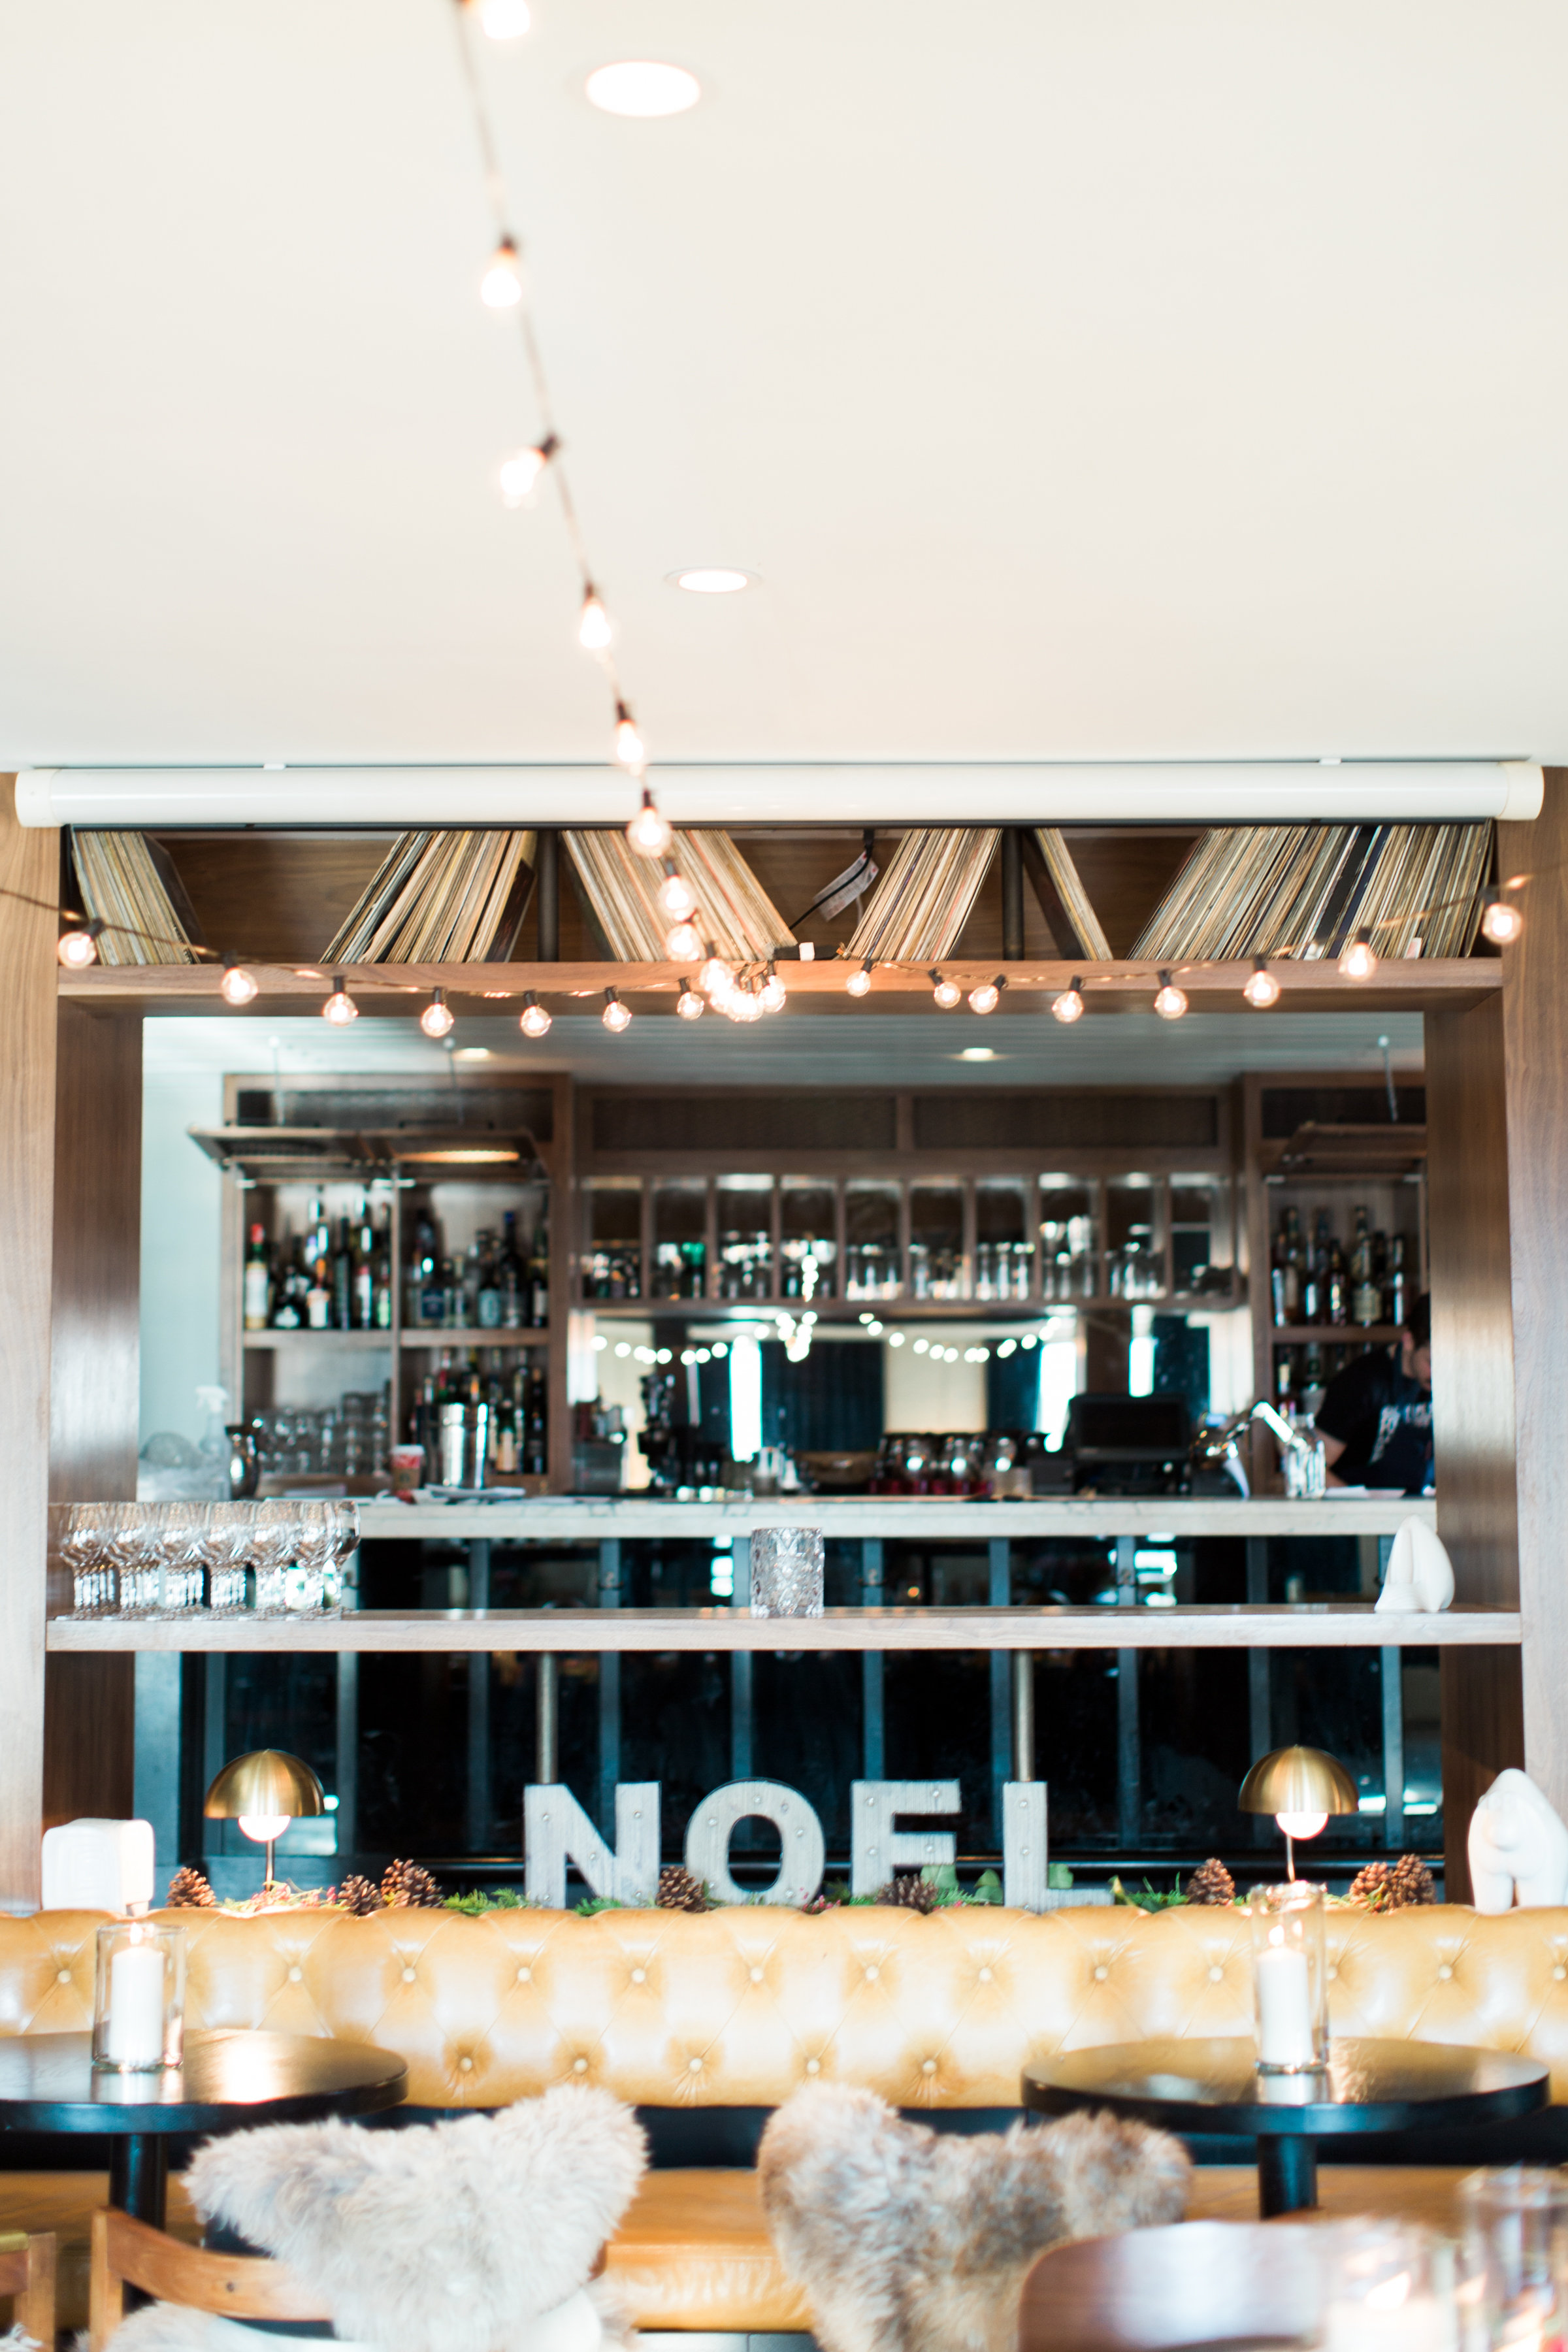 Get the look: Glass candleholder, NOEL marquee sign